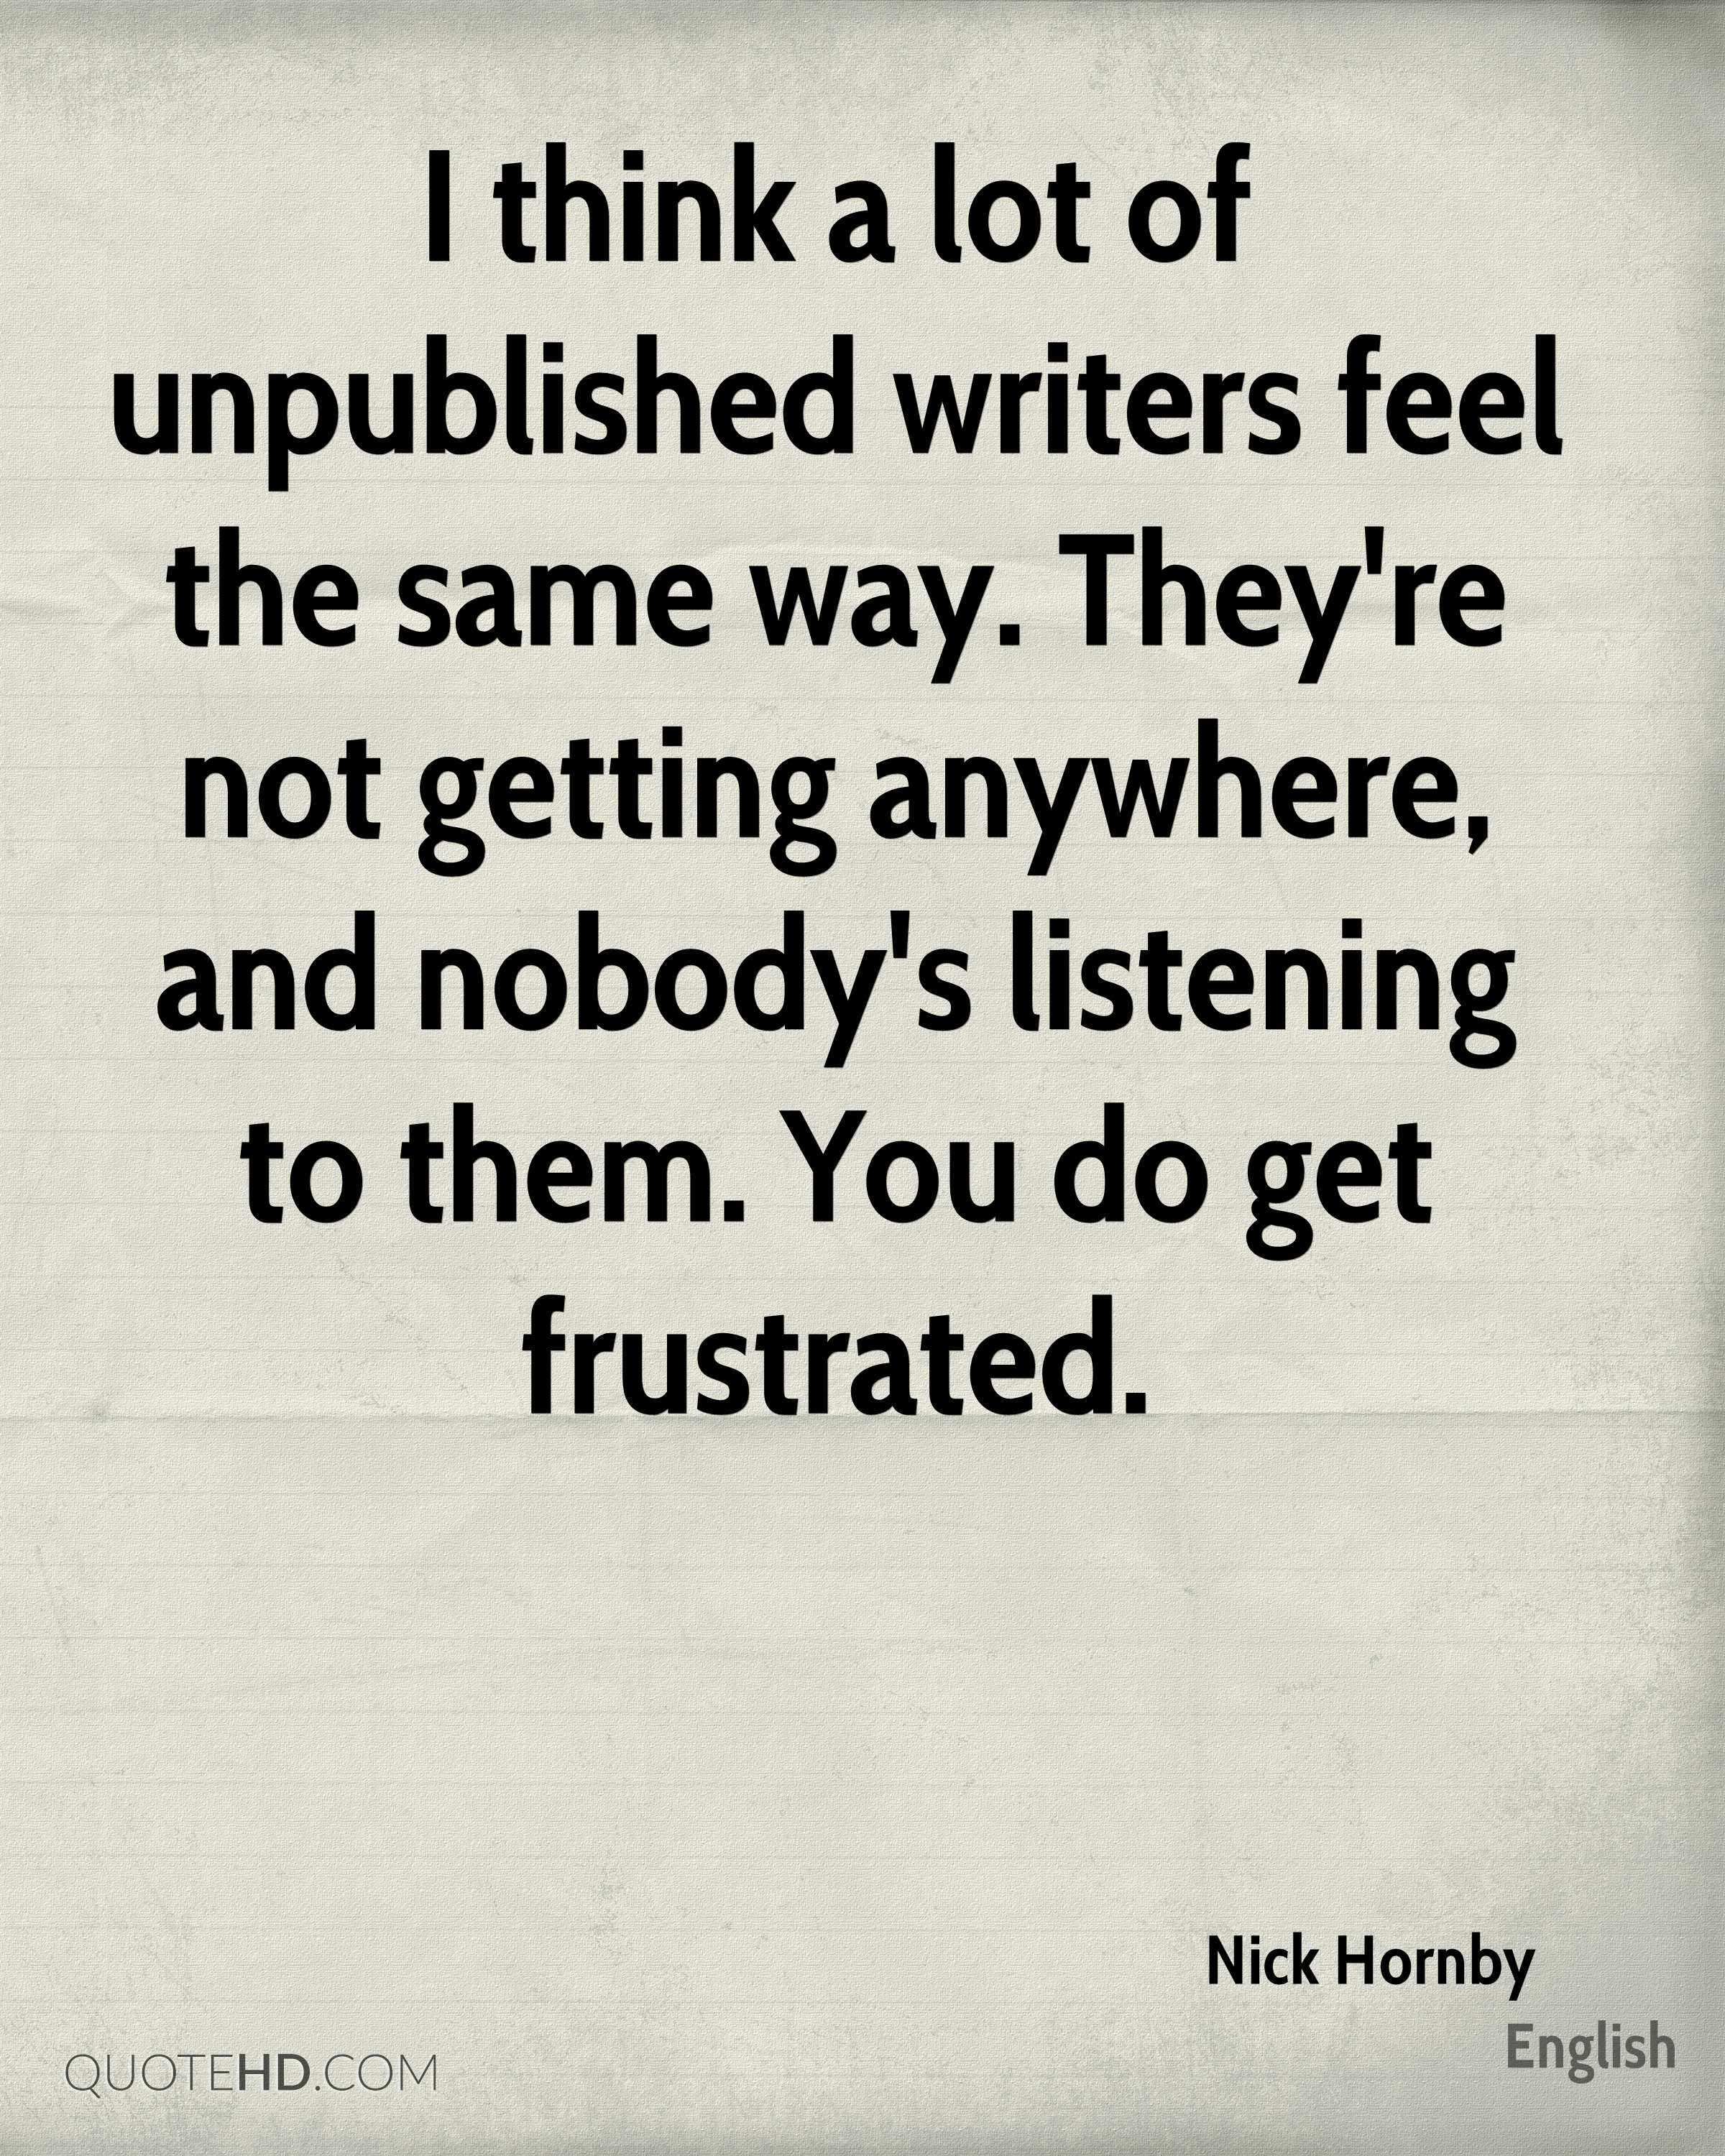 I think a lot of unpublished writers feel the same way. They're not getting anywhere, and nobody's listening to them. You do get frustrated.